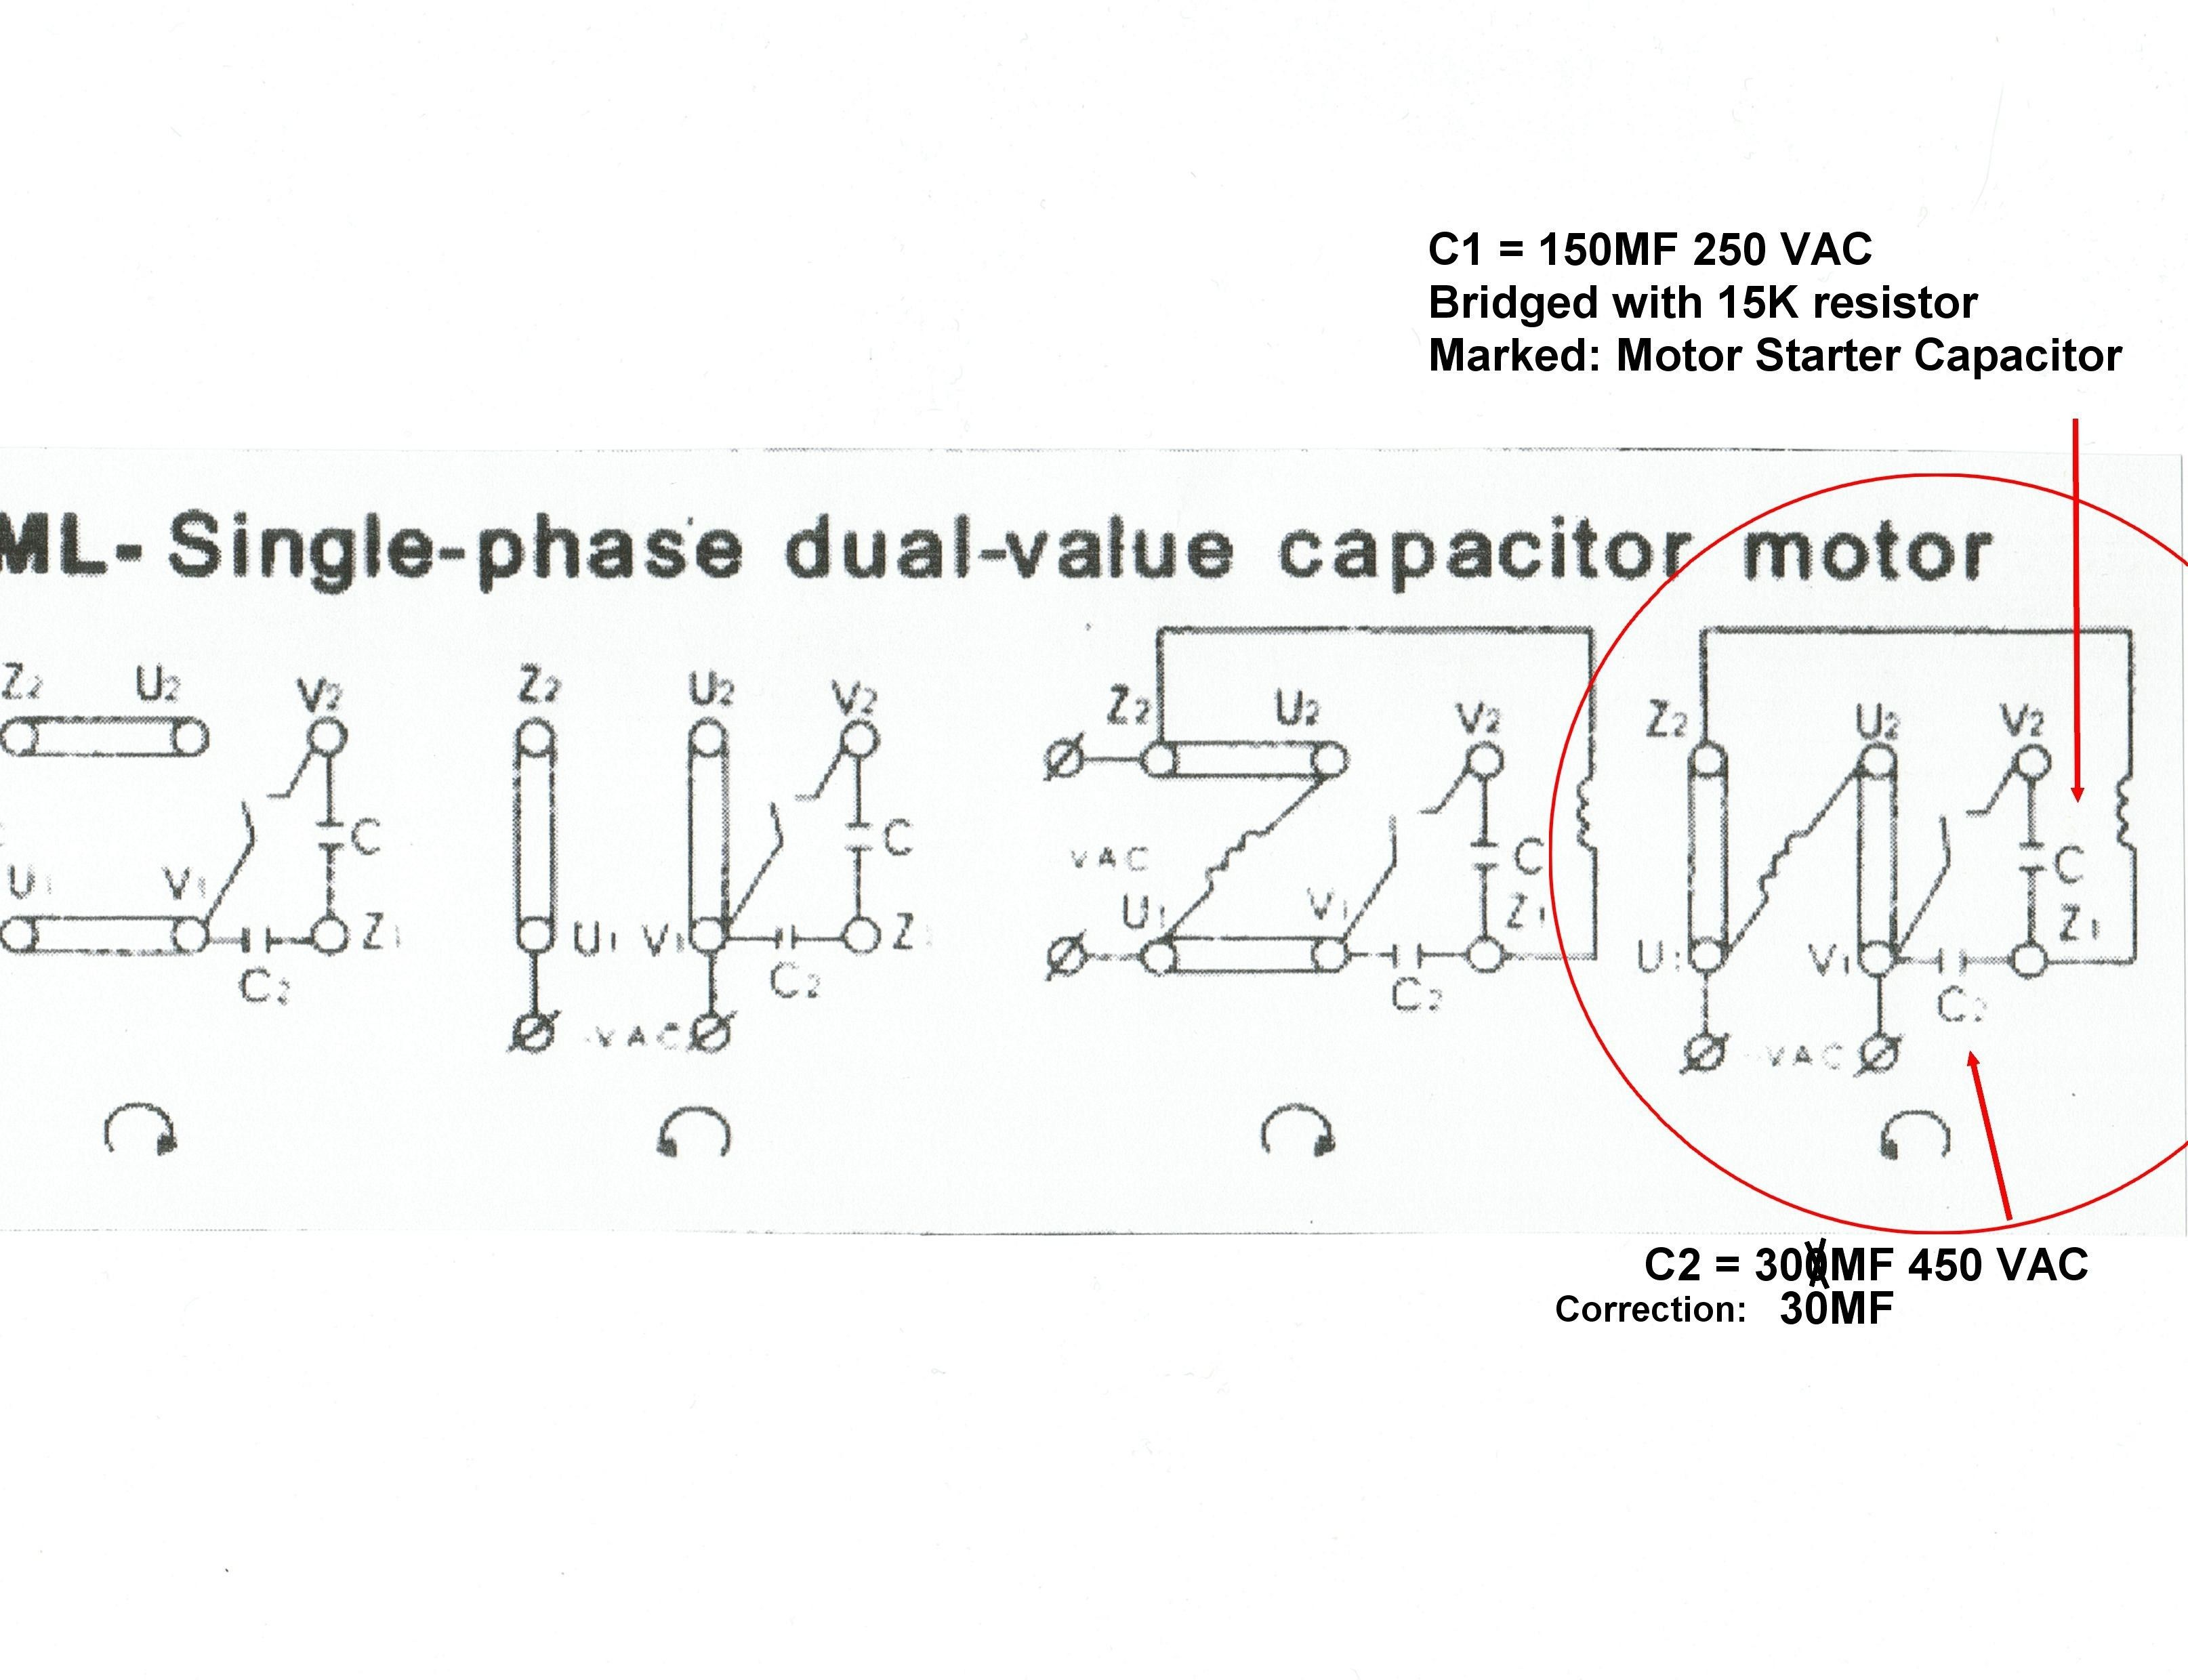 6 wire motor diagram y wiring diagram com Motor Wiring Diagram 3 Phase 12 Wire